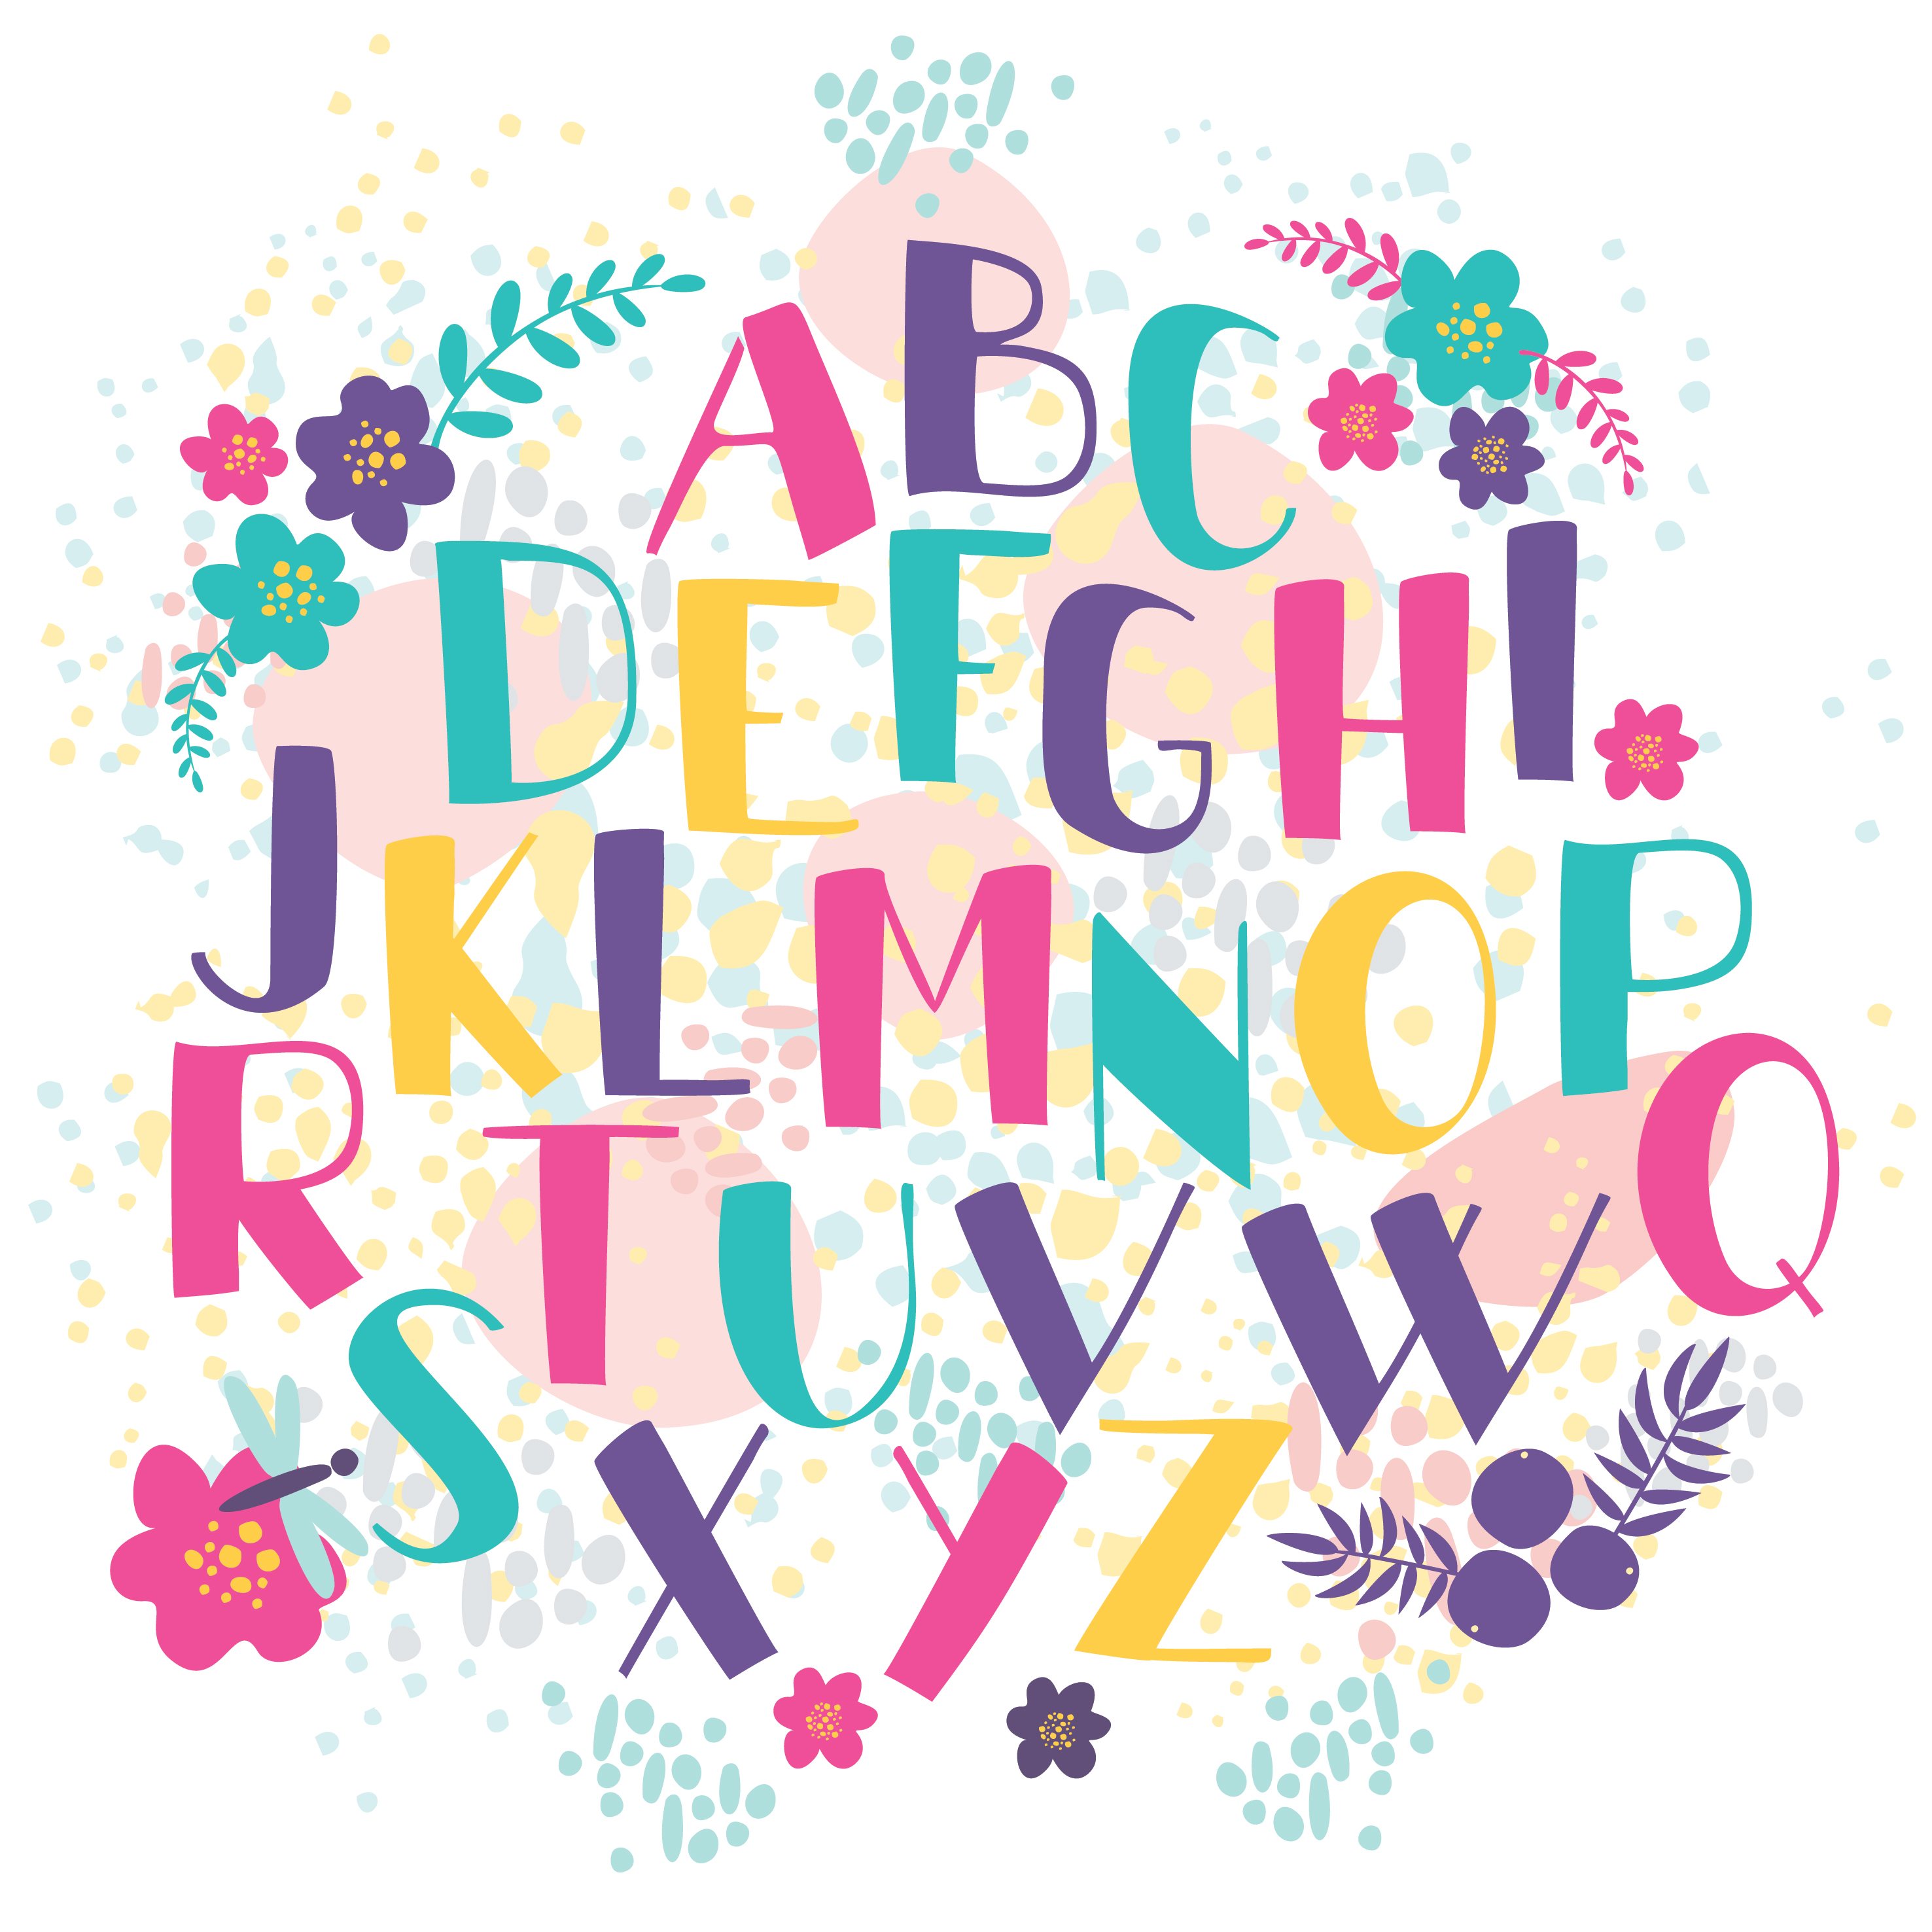 hand-drawn letters